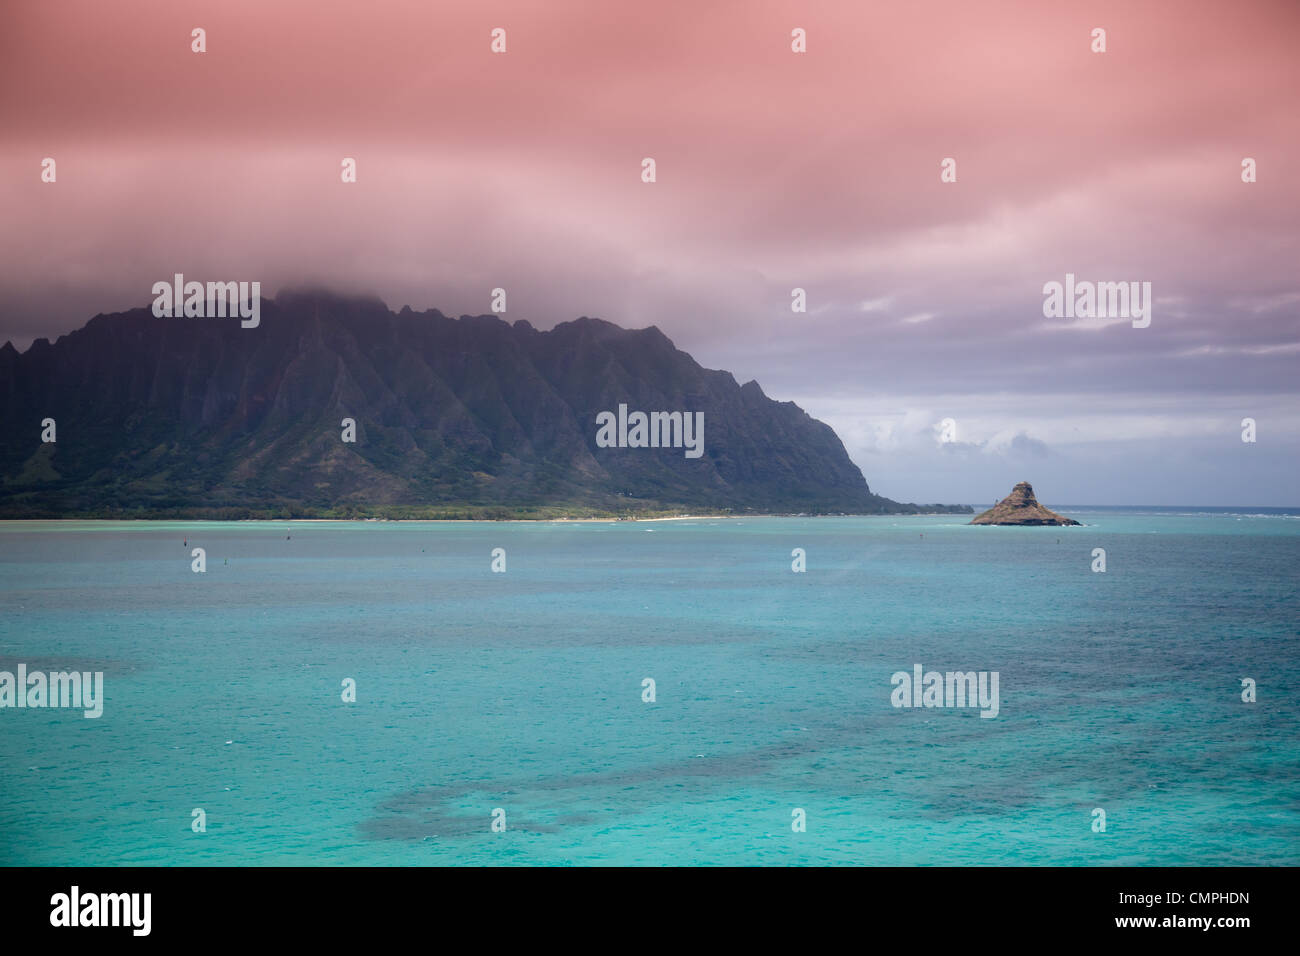 Colorful sky over Kaneohe Bay, Oahu, Hawaii with Chinaman's Hat island to the left. - Stock Image